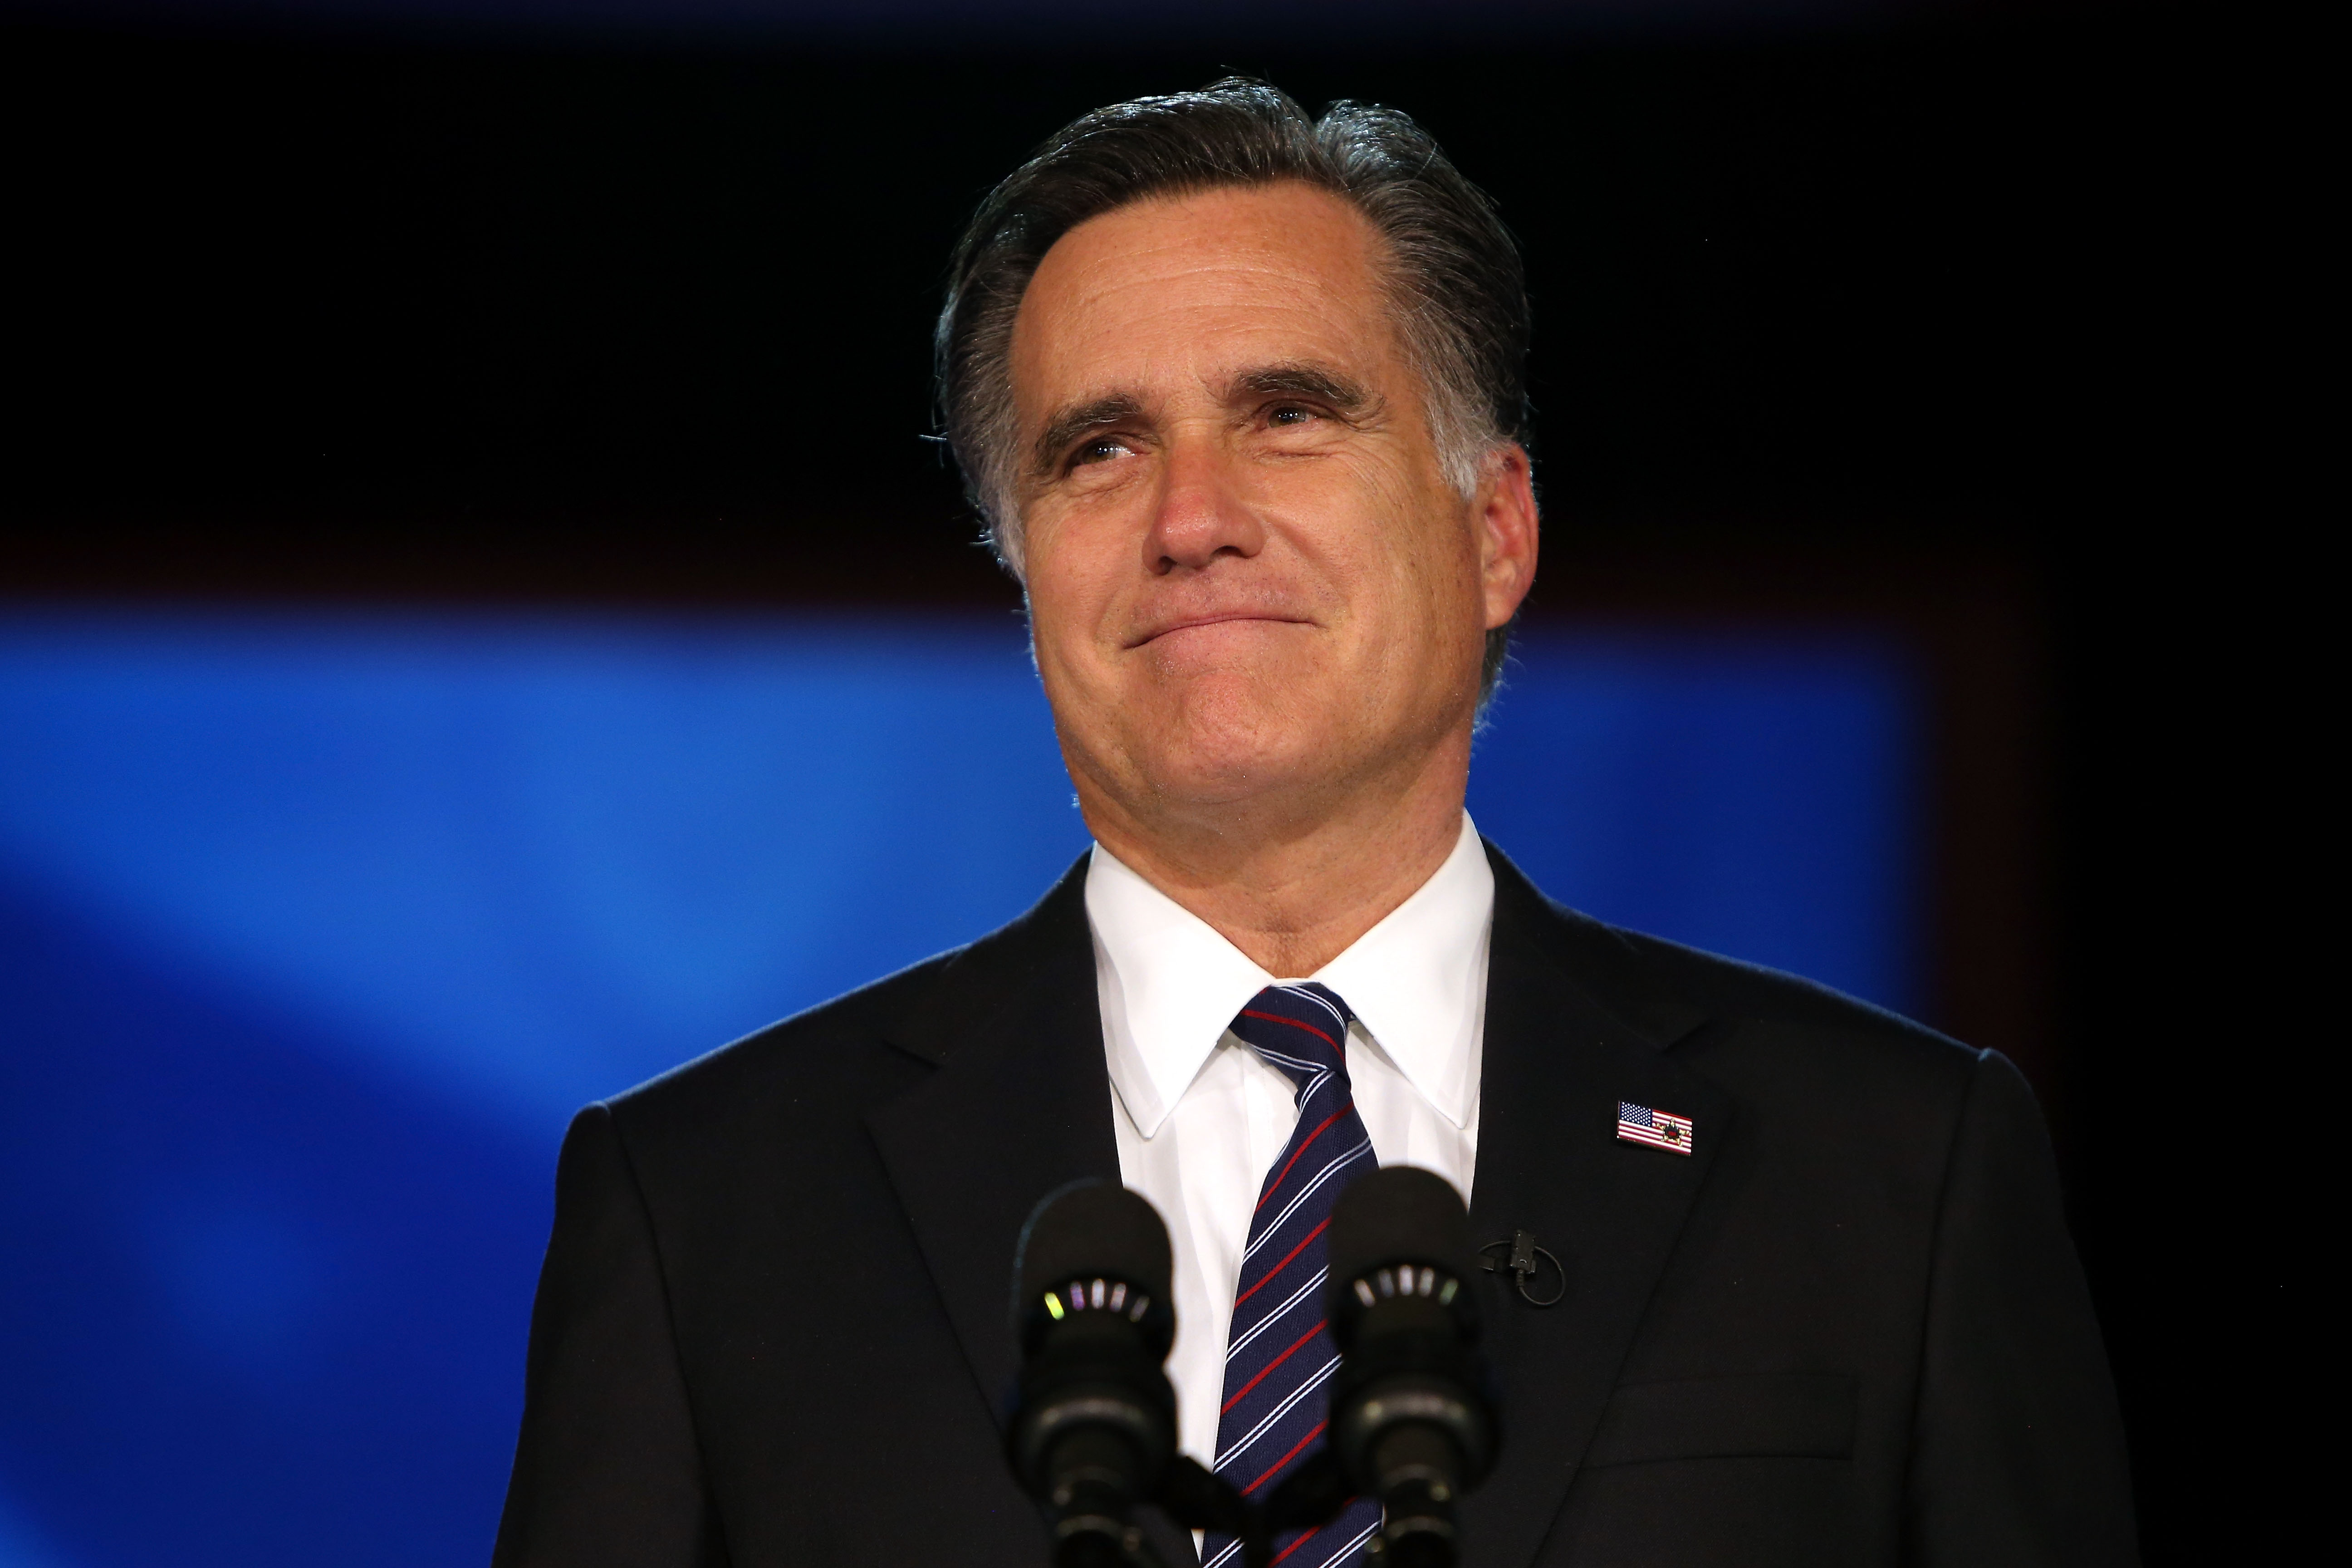 BOSTON, MA - NOVEMBER 07: Republican presidential candidate, Mitt Romney, speaks at the podium as he concedes the presidency during Mitt Romney's campaign election night event at the Boston Convention & Exhibition Center on November 7, 2012 in Boston, Massachusetts. After voters went to the polls in the heavily contested presidential race, networks projected incumbent U.S. President Barack Obama has won re-election against Republican candidate, former Massachusetts Gov. Mitt Romney. (Photo by Justin Sullivan/Getty Images)